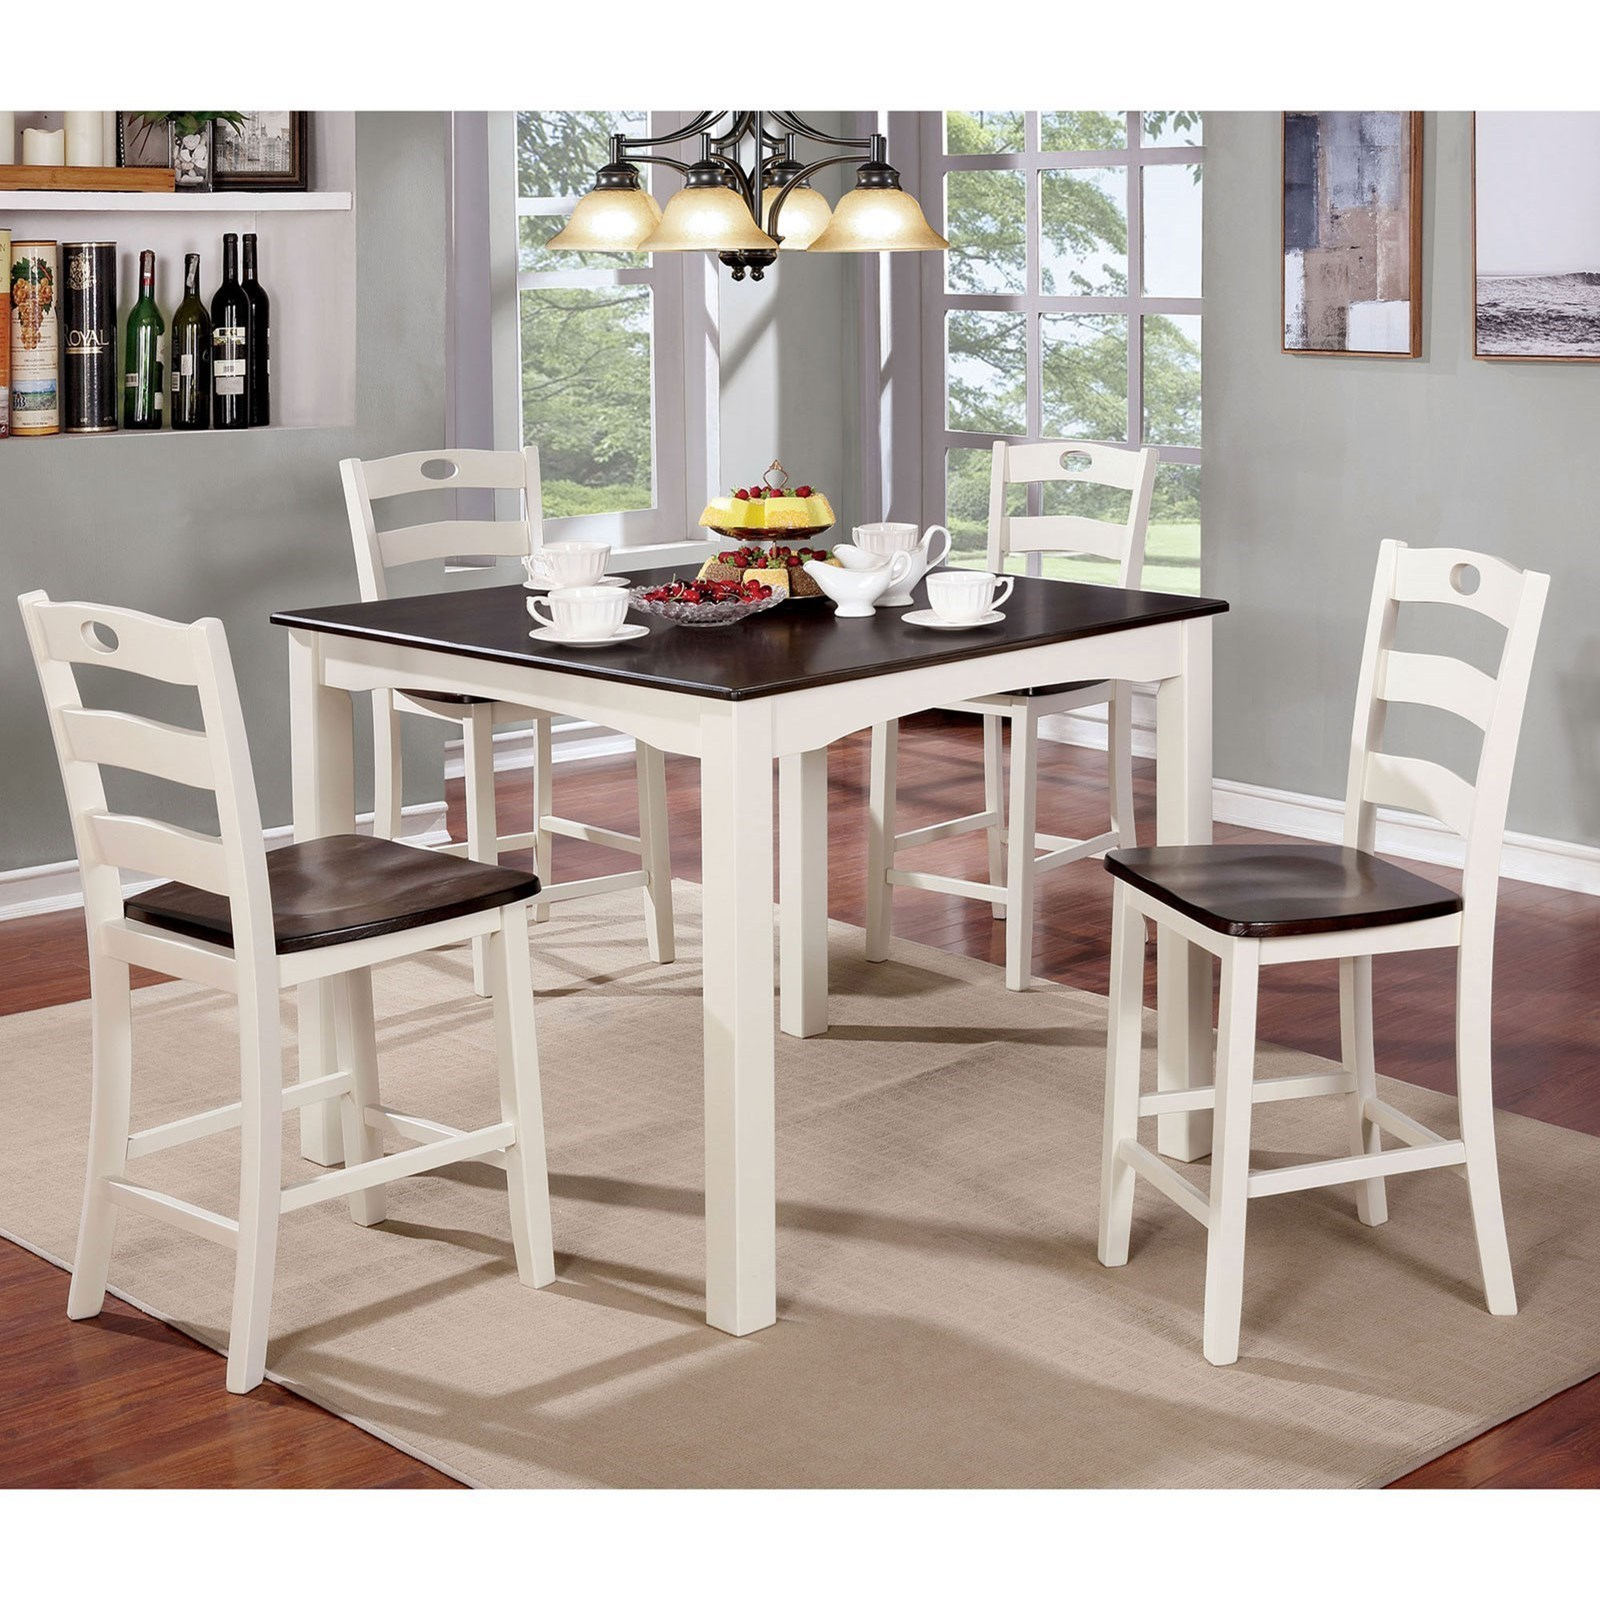 Furniture Of America Liliana Vintage 5 Piece Counter Height Dining